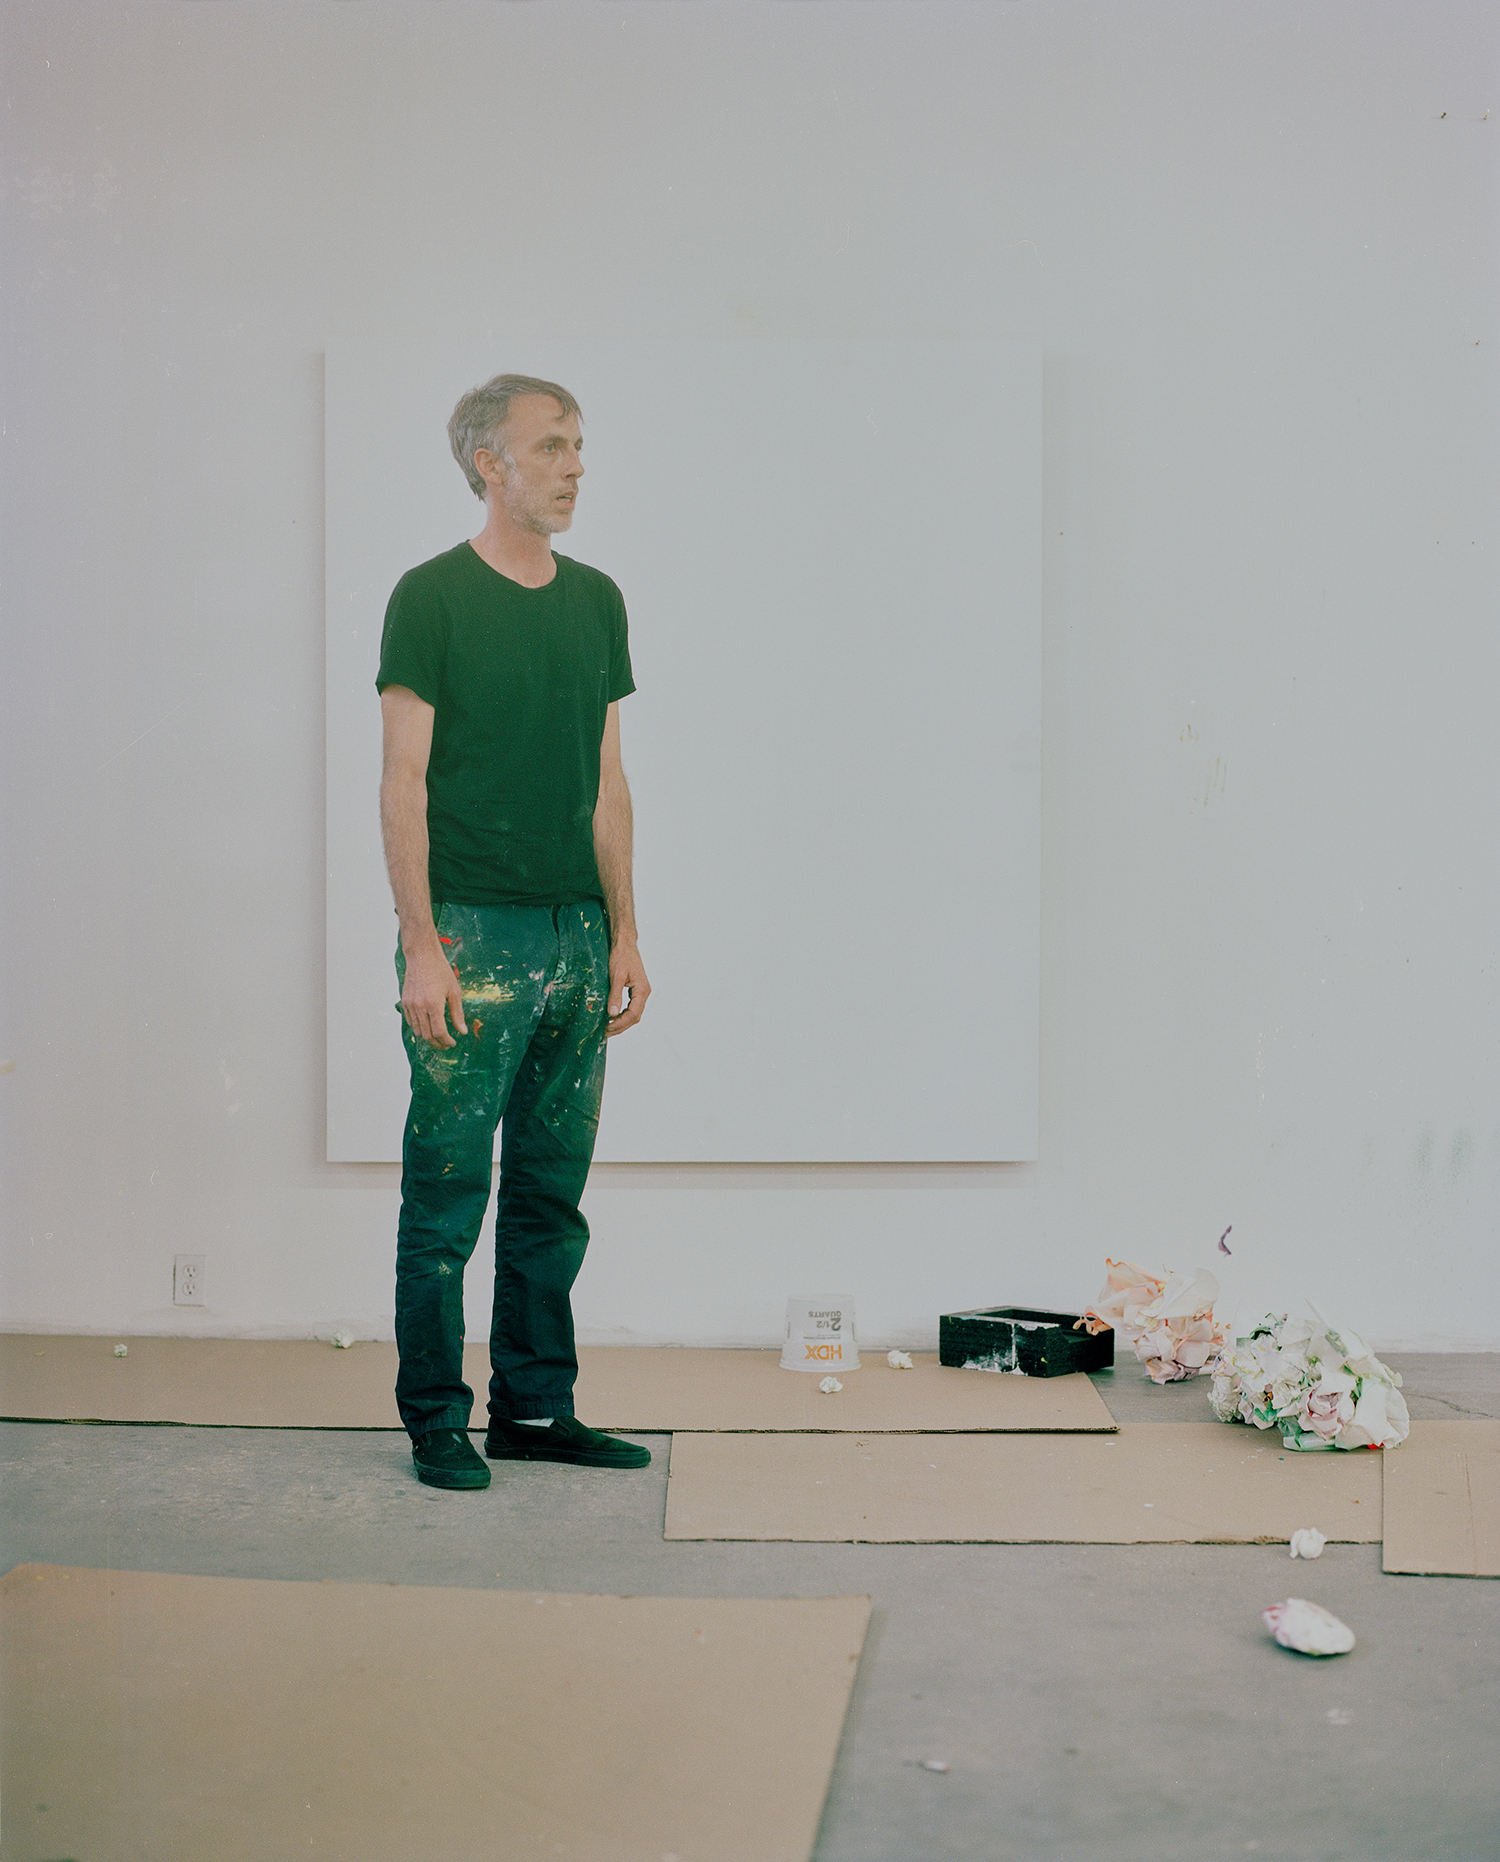 Painter Jules De Balincourt in his Los Angeles studio for Harper's Bazaar Art.